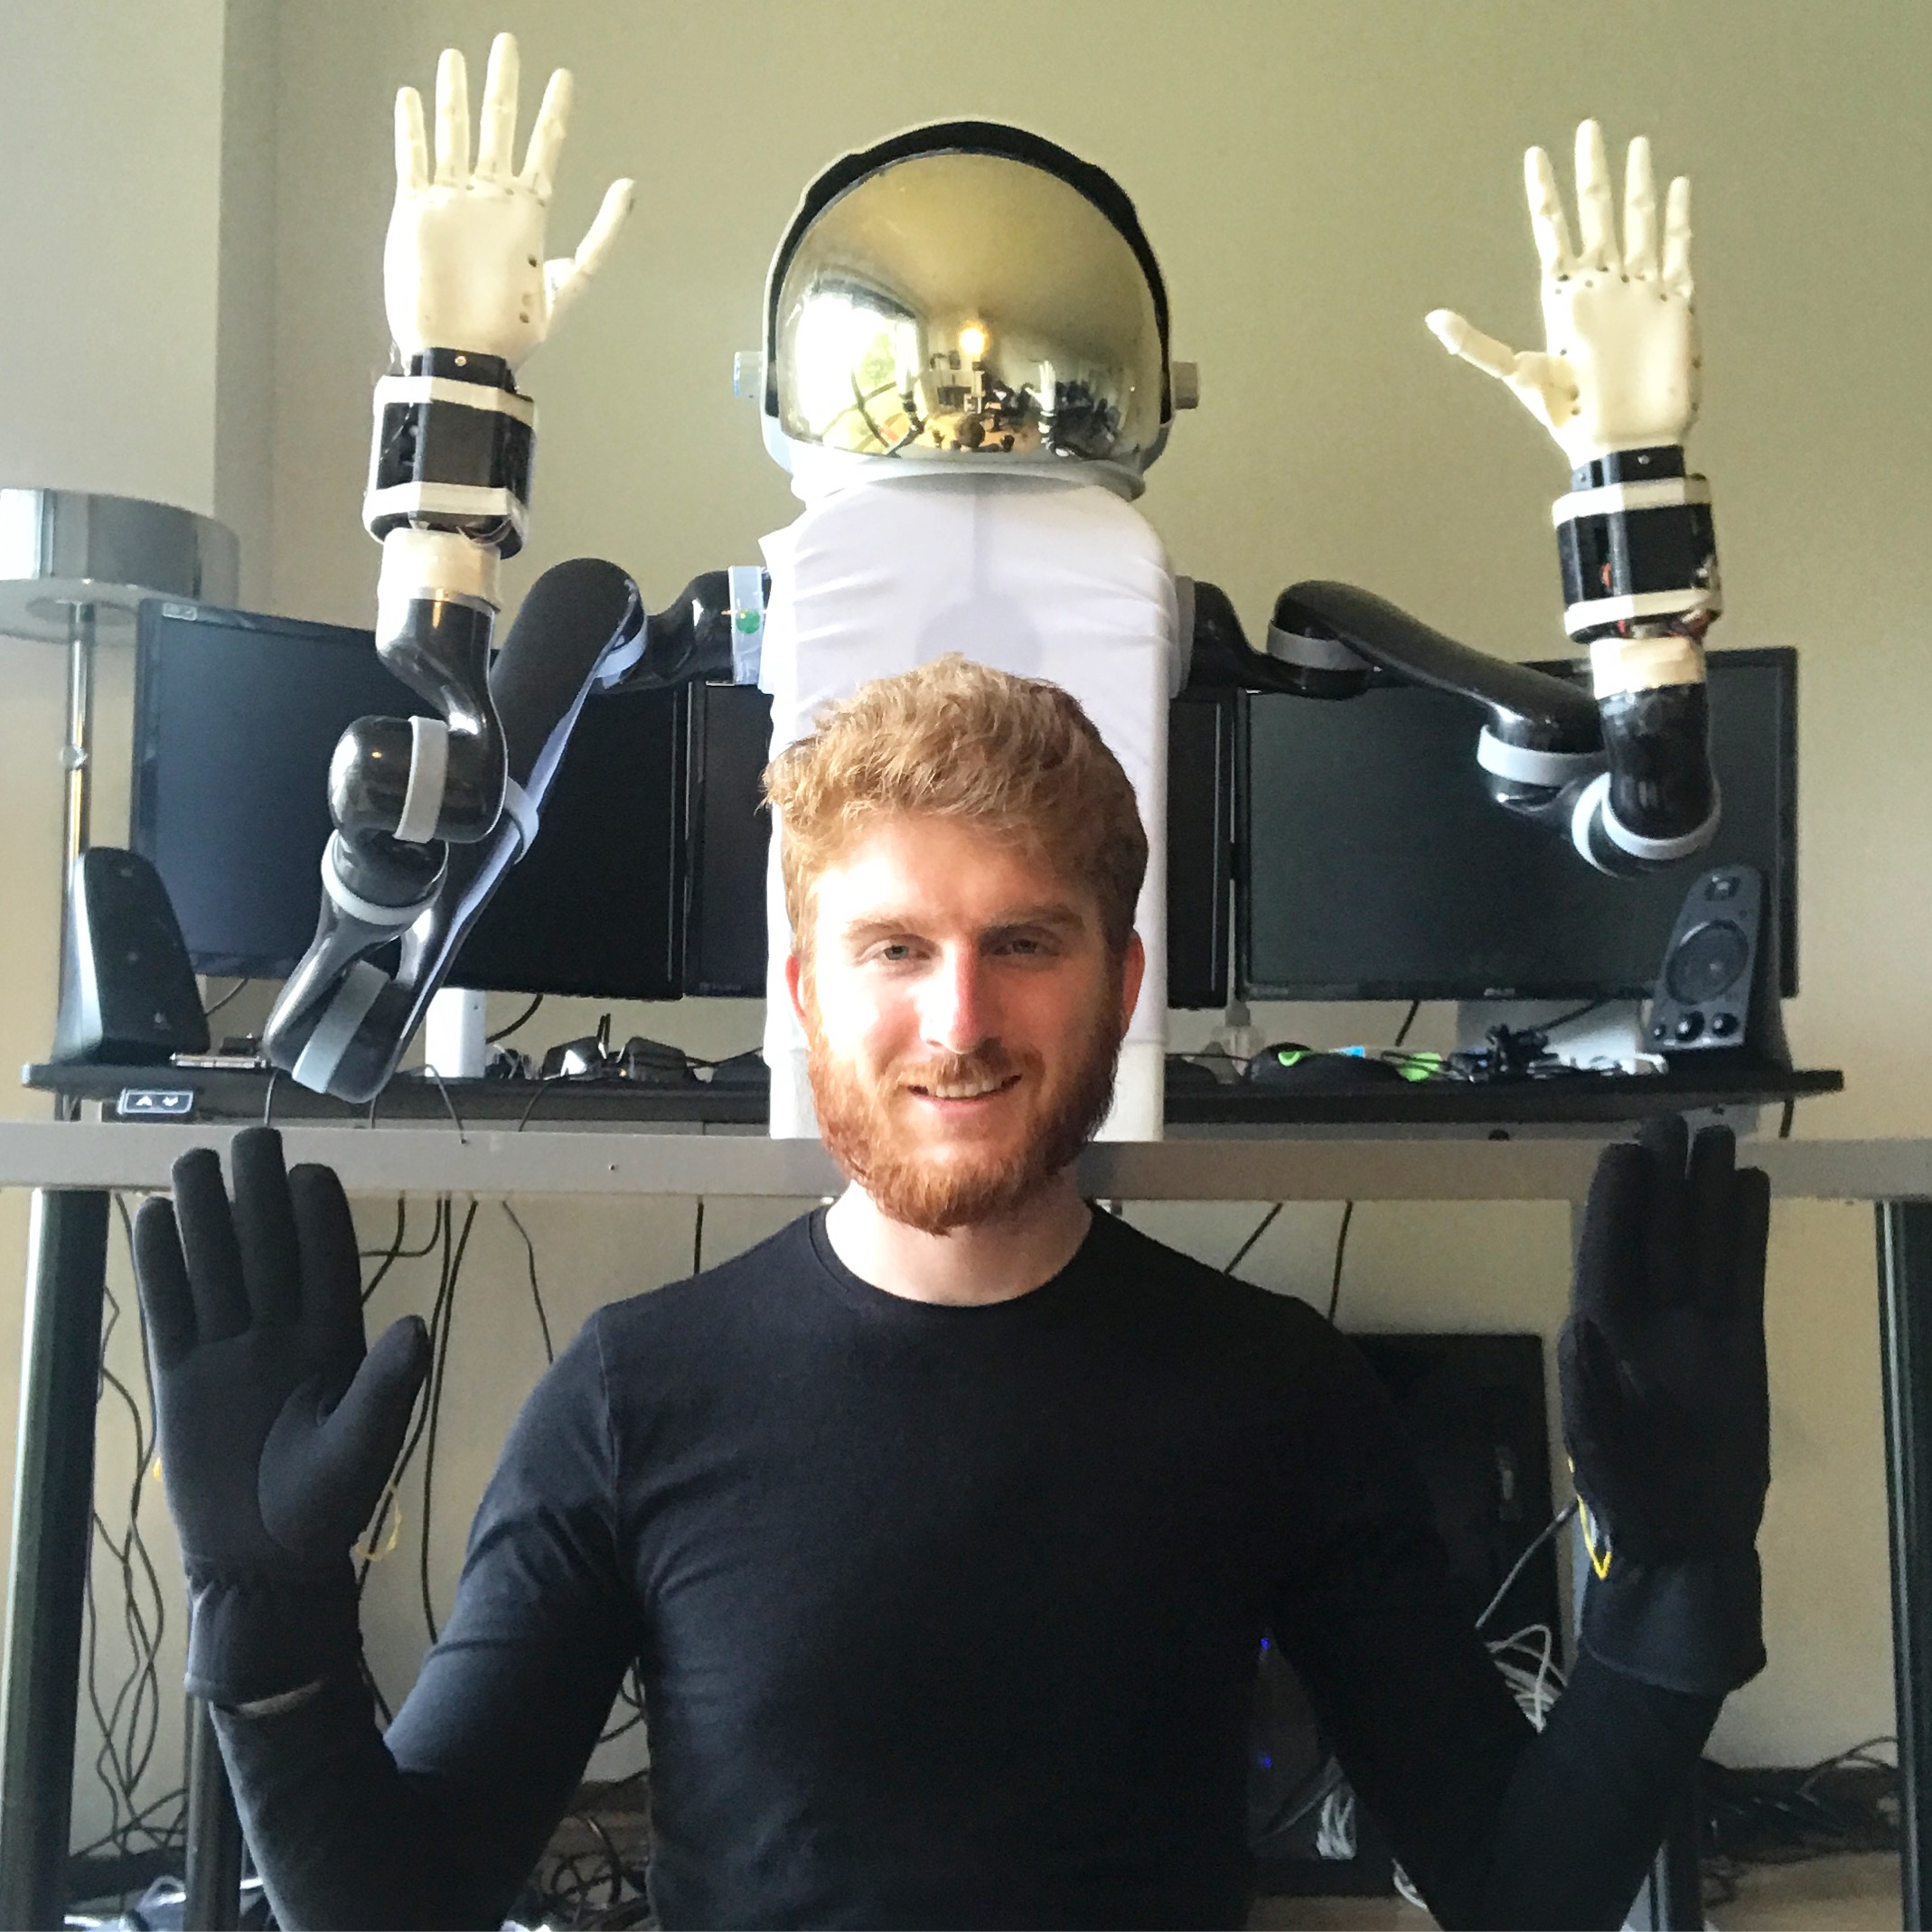 SpaceVR thinks VR-enabled robots are the future for colonizing space